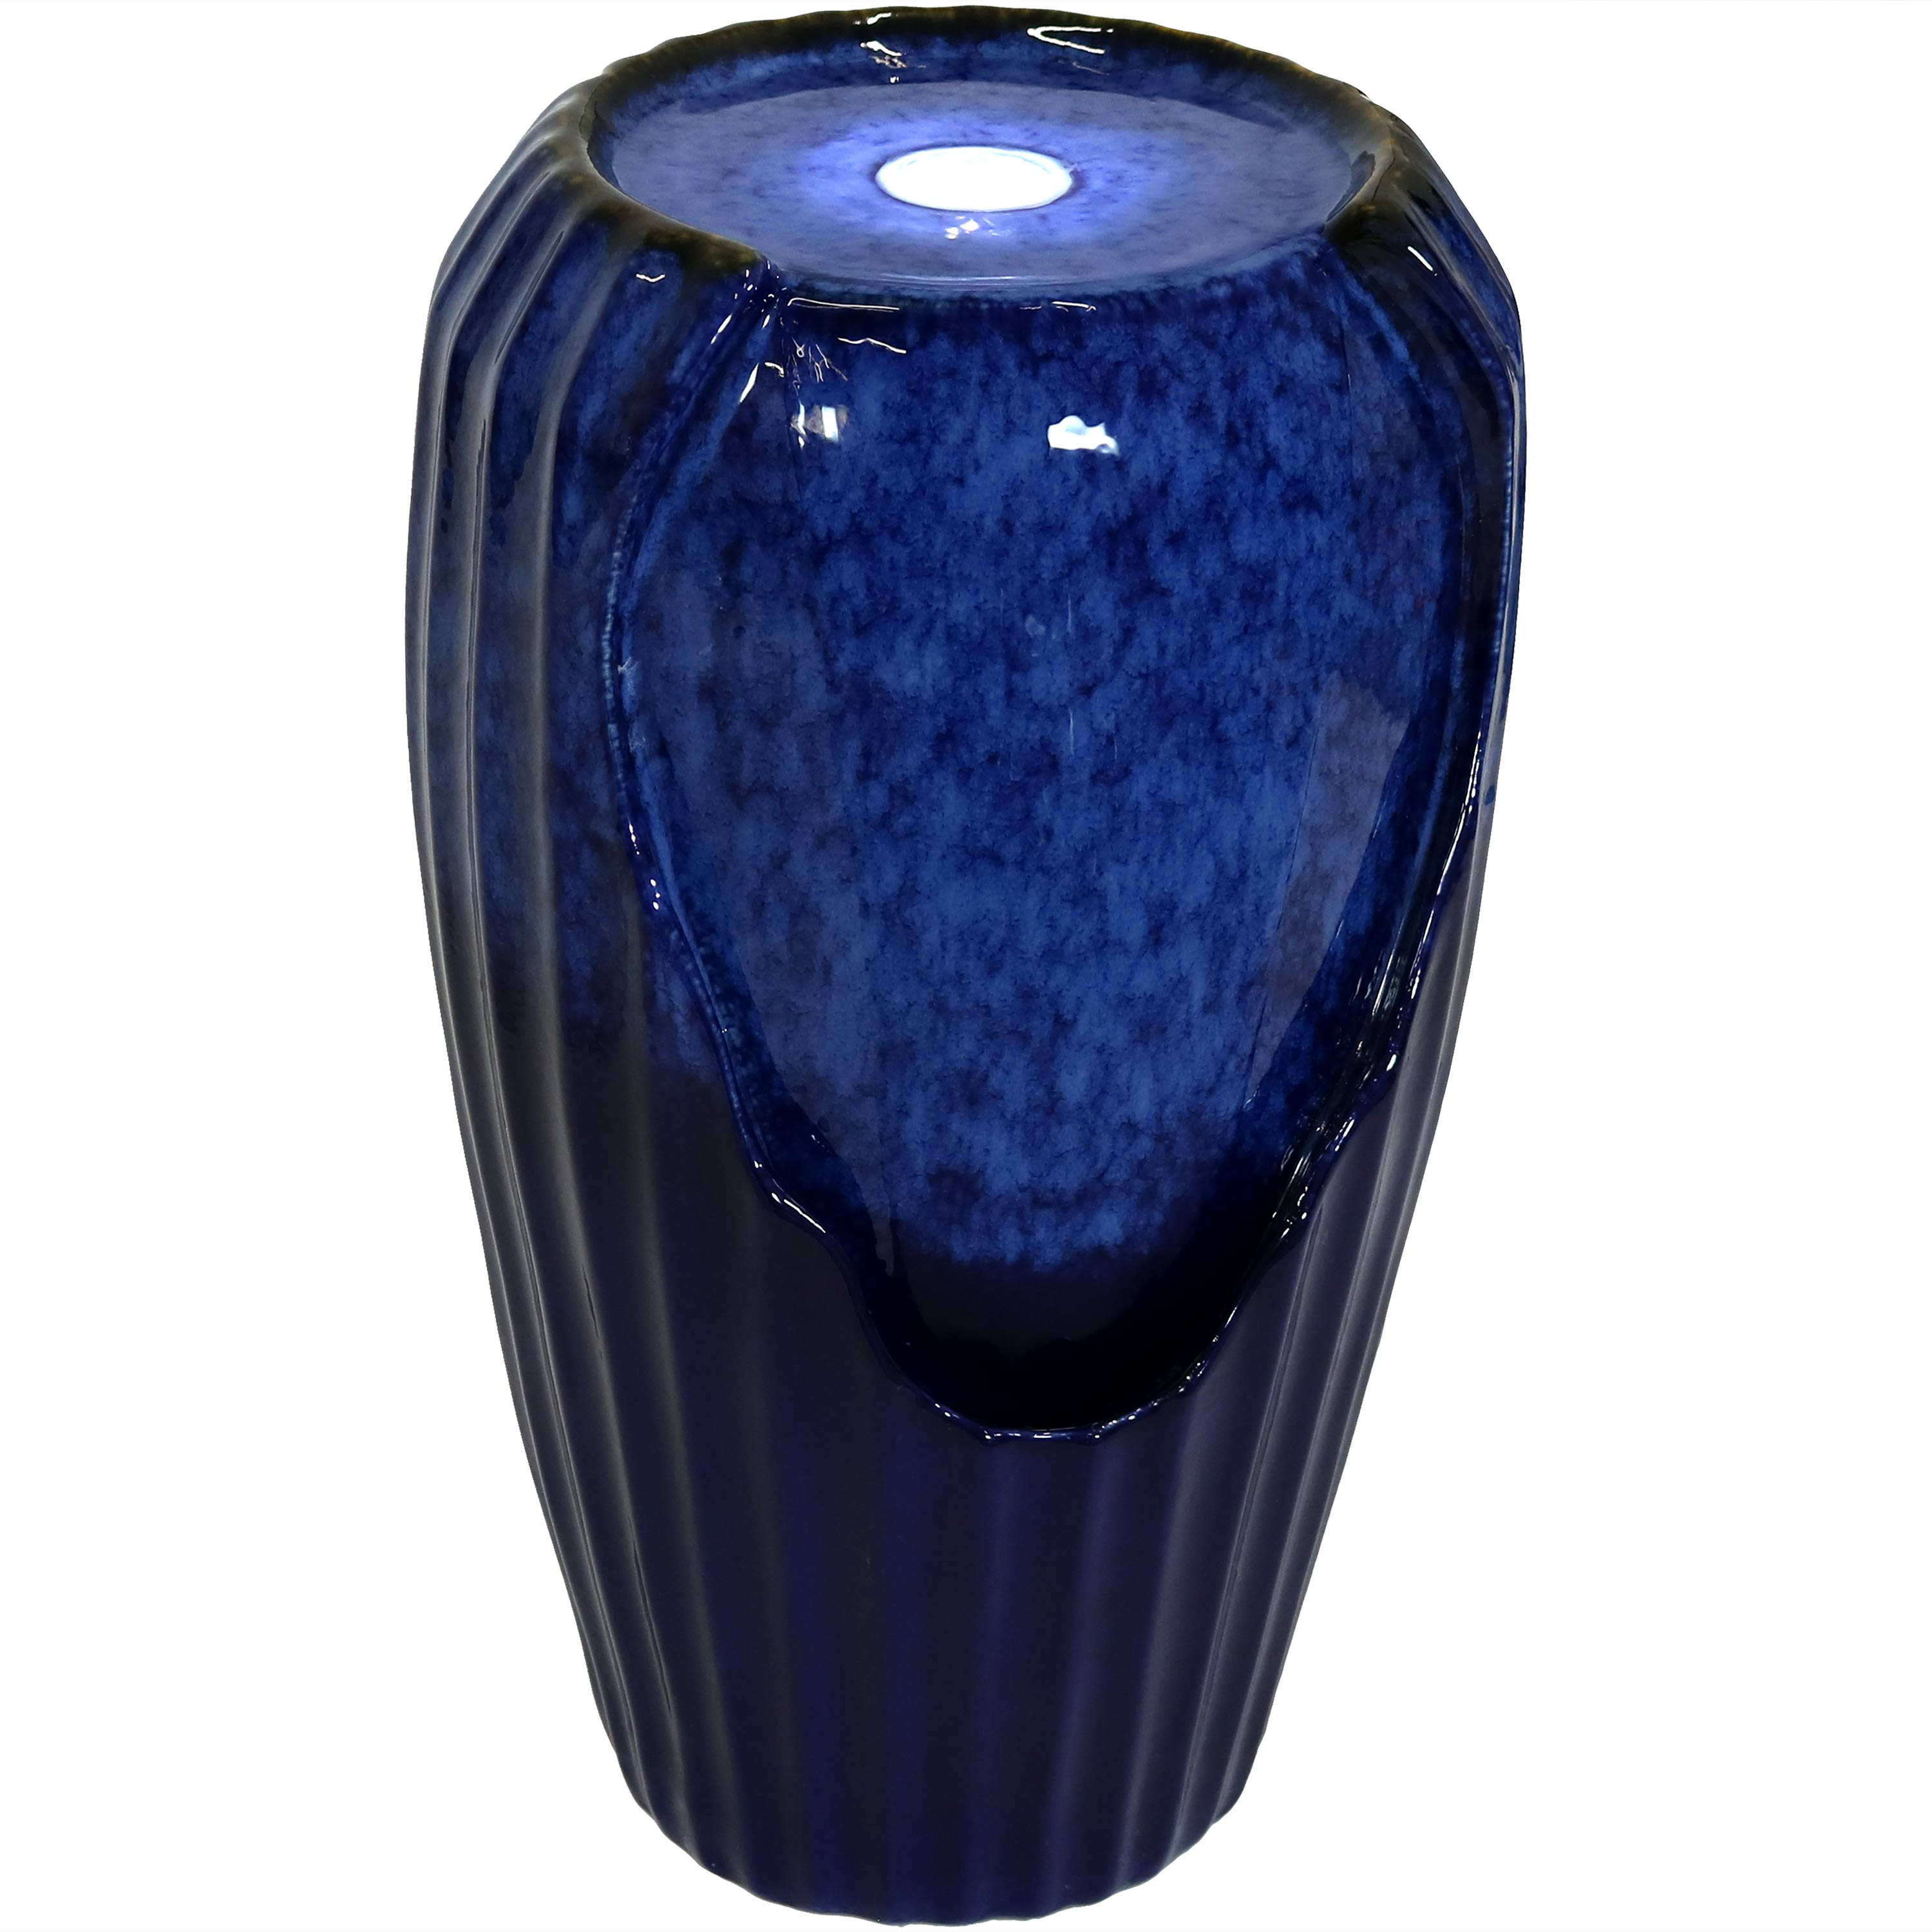 Blue Ceramic Vase Water Fountain Led Lights Submersible Pump Photo